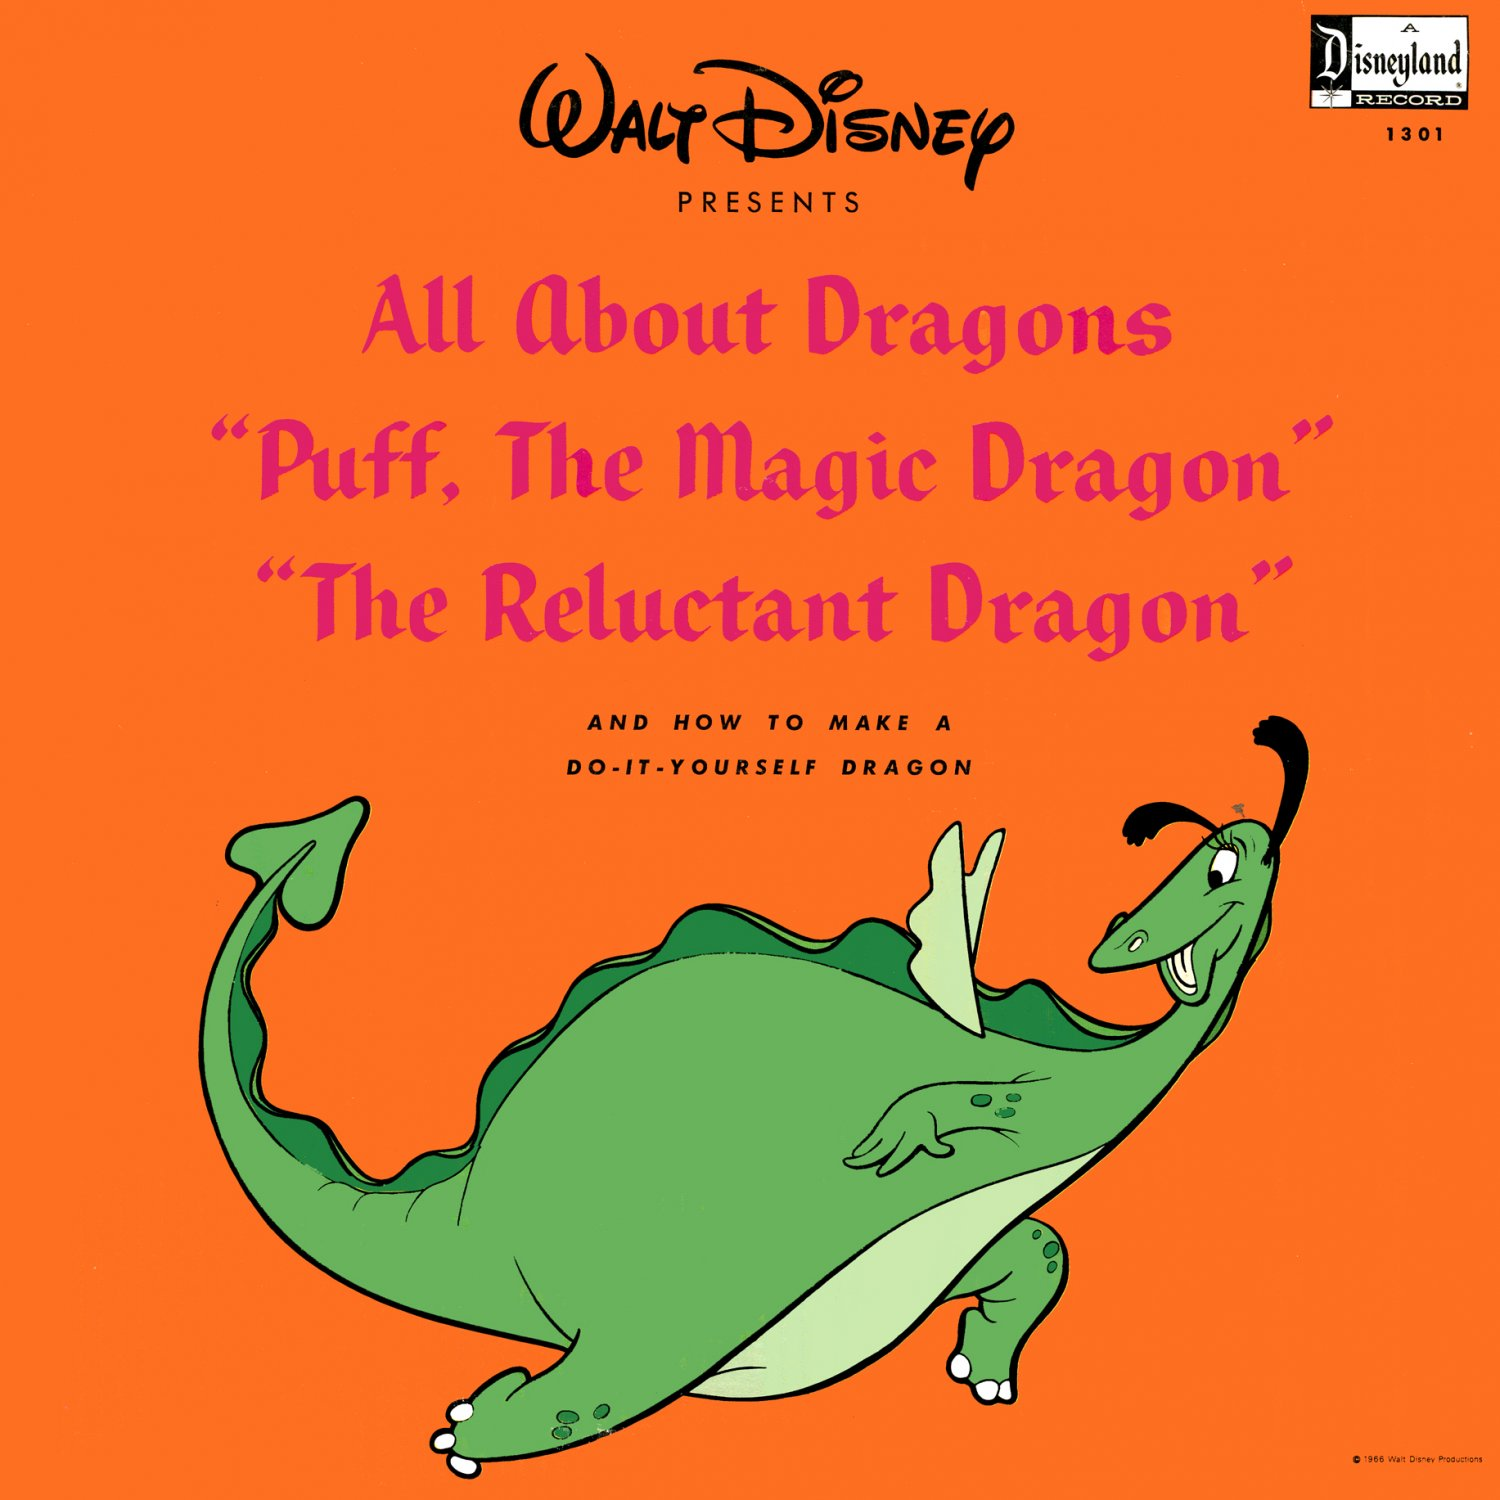 All About Dragons - Walt Disney Soundtrack, The Reluctant Dragon LP/CD